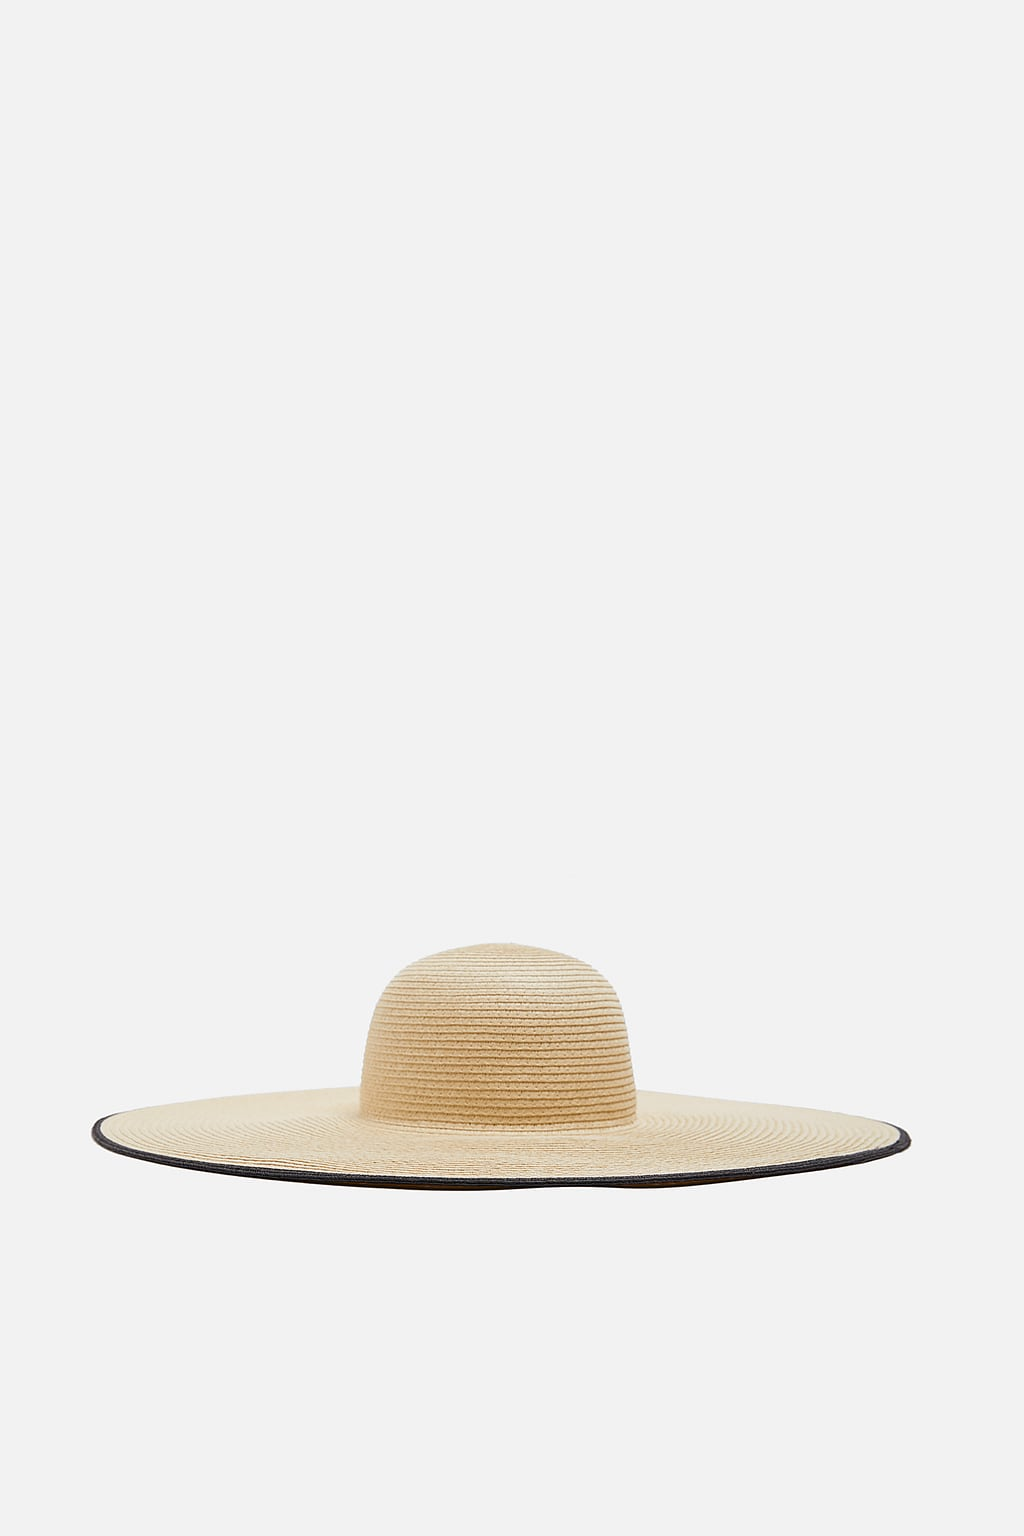 Zara Sun Hat - Natural Large sun hat with a contrast border